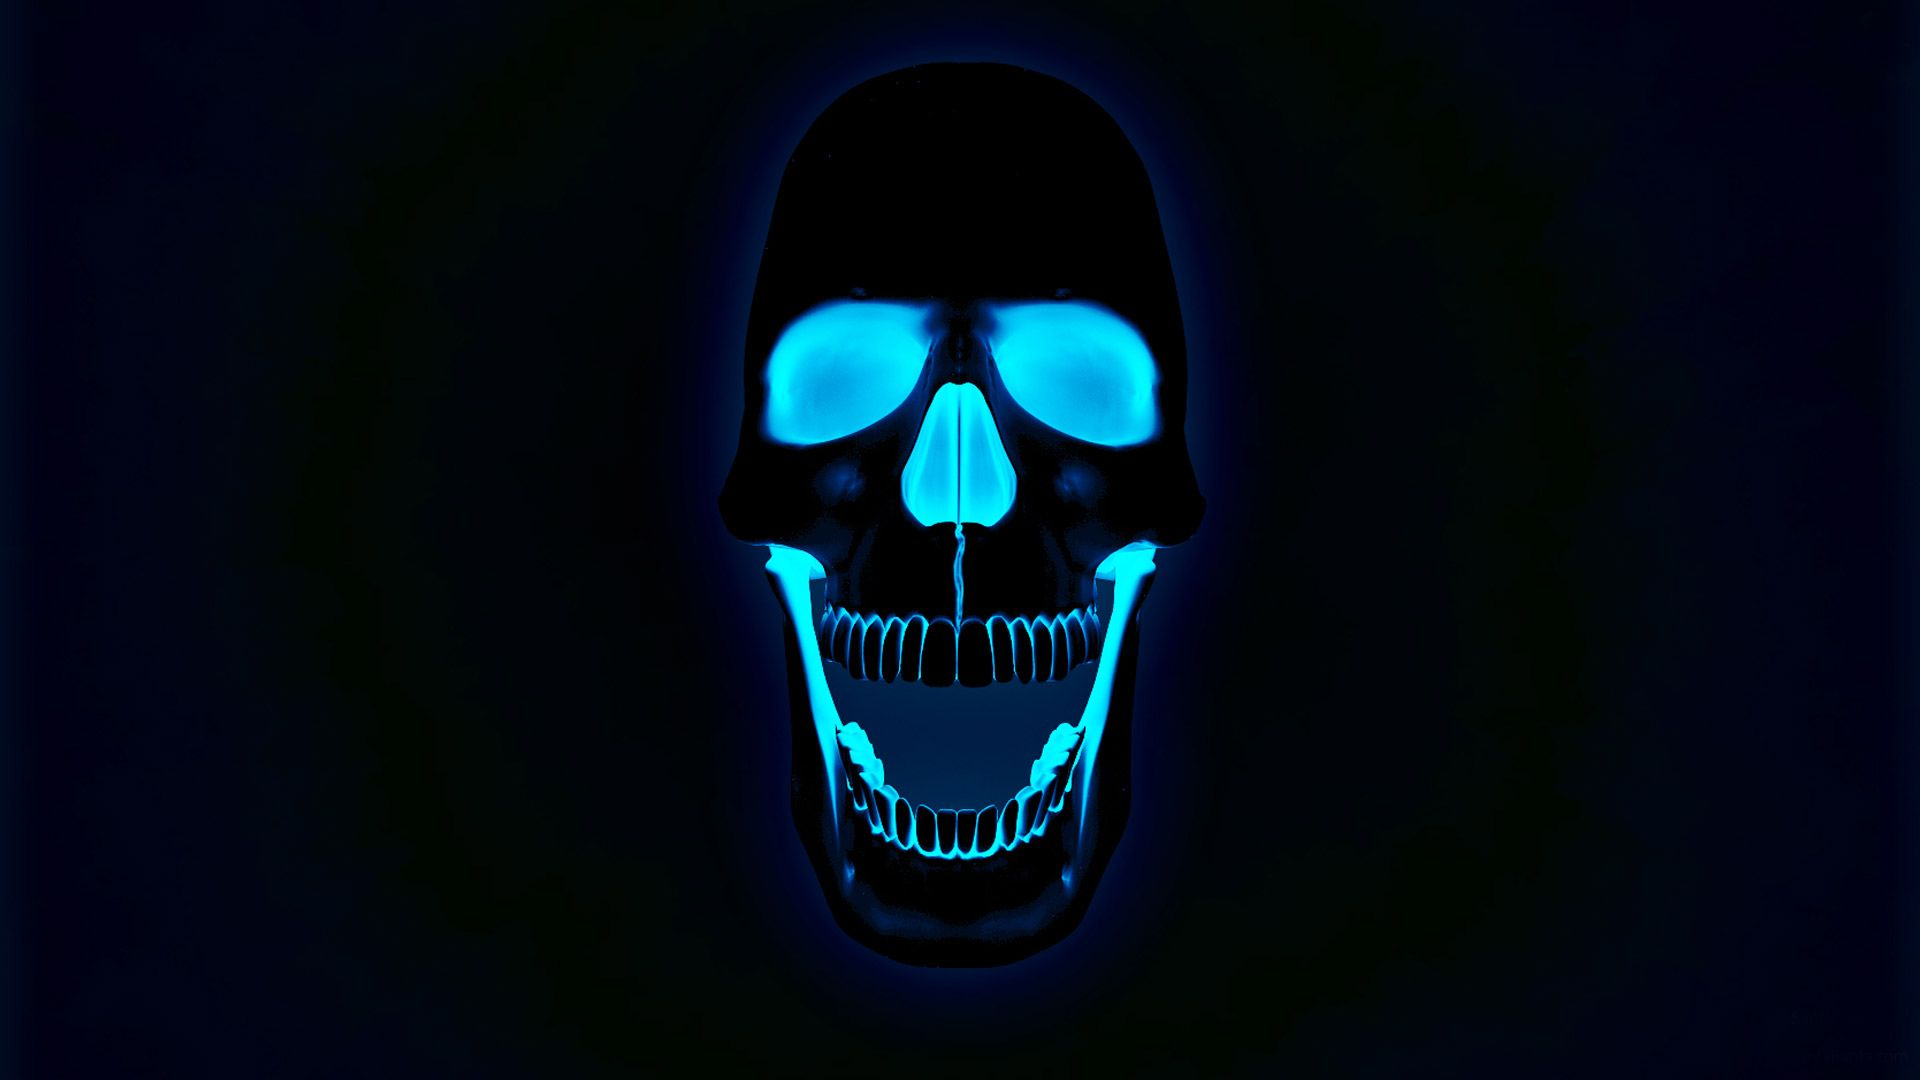 Glowing neon skull wallpaper